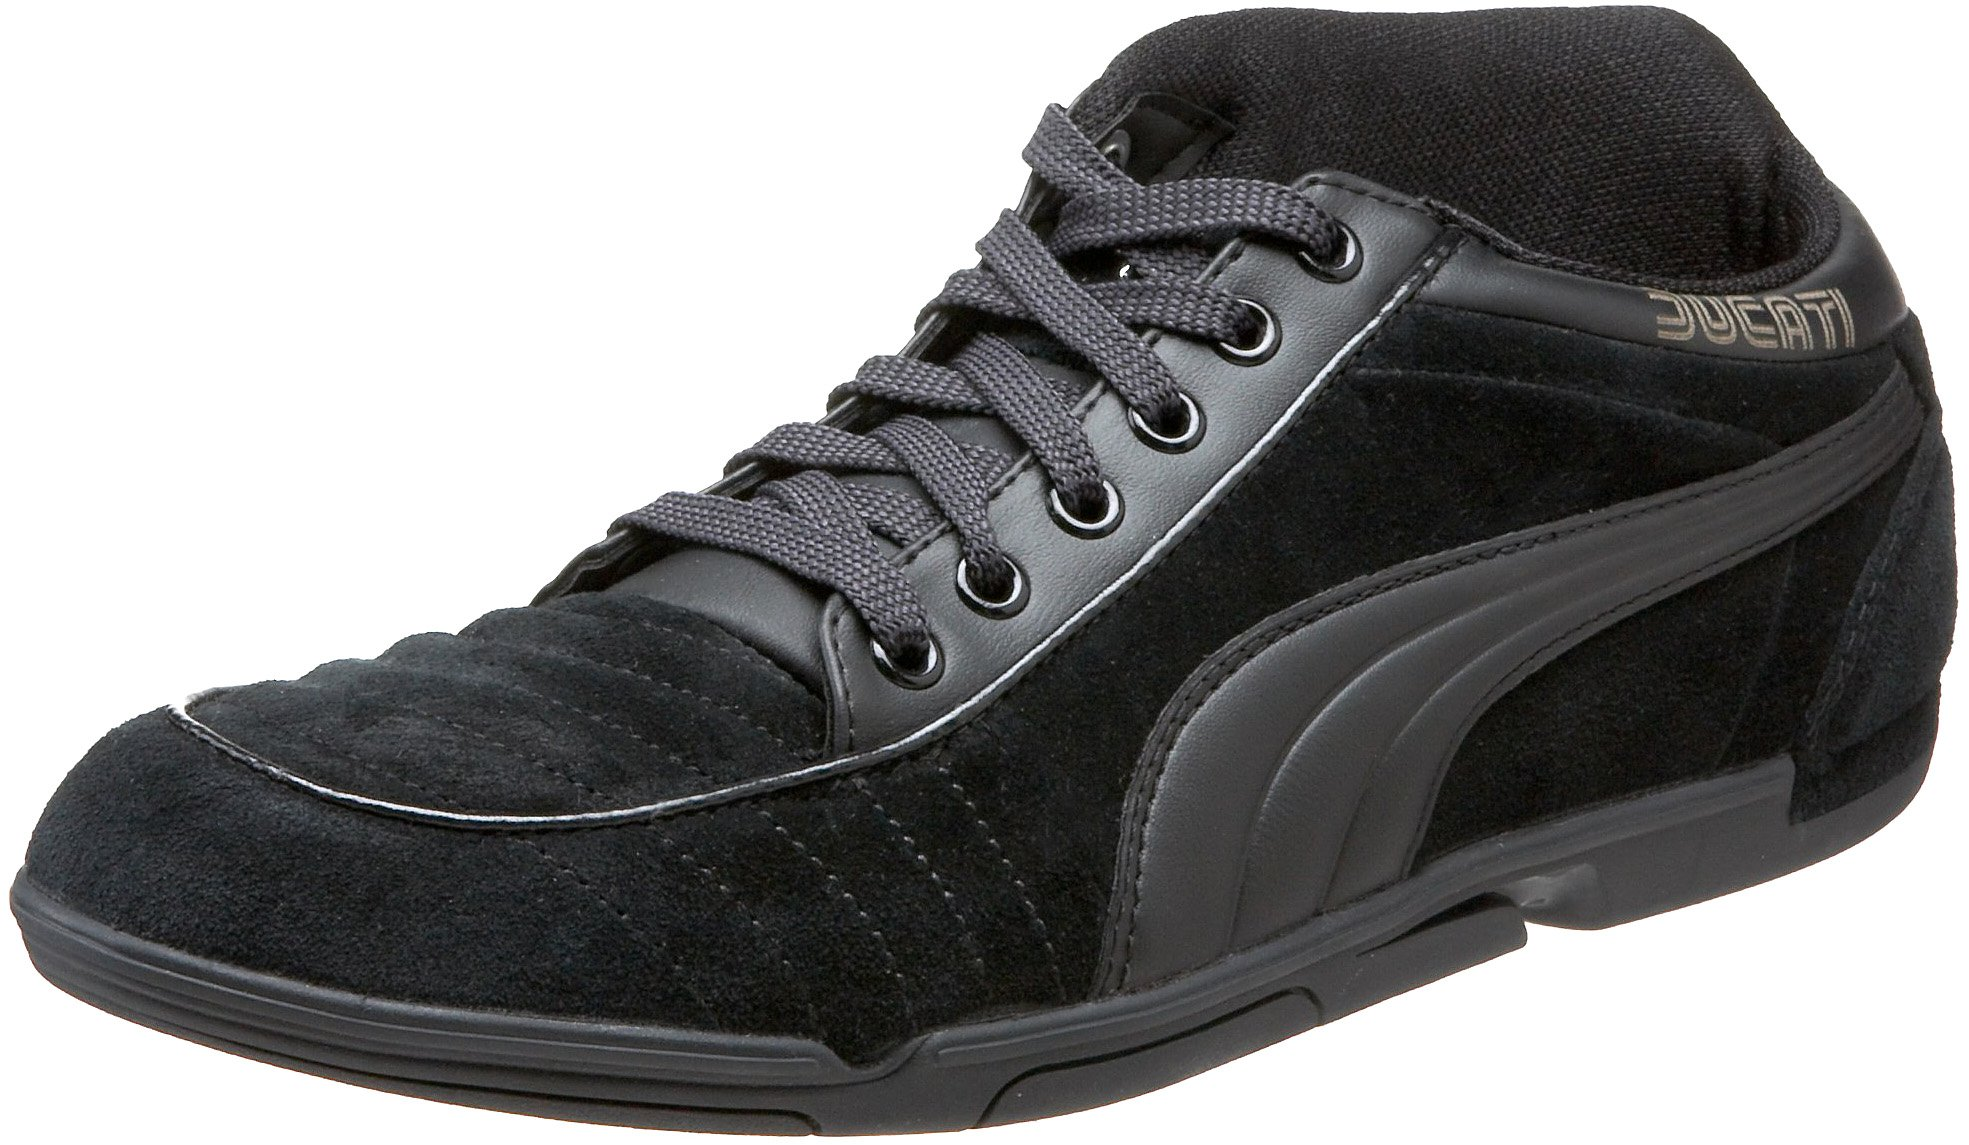 Puma 65CC Ducati Fashion Sneaker,Black/Black/White,7 D US by PUMA